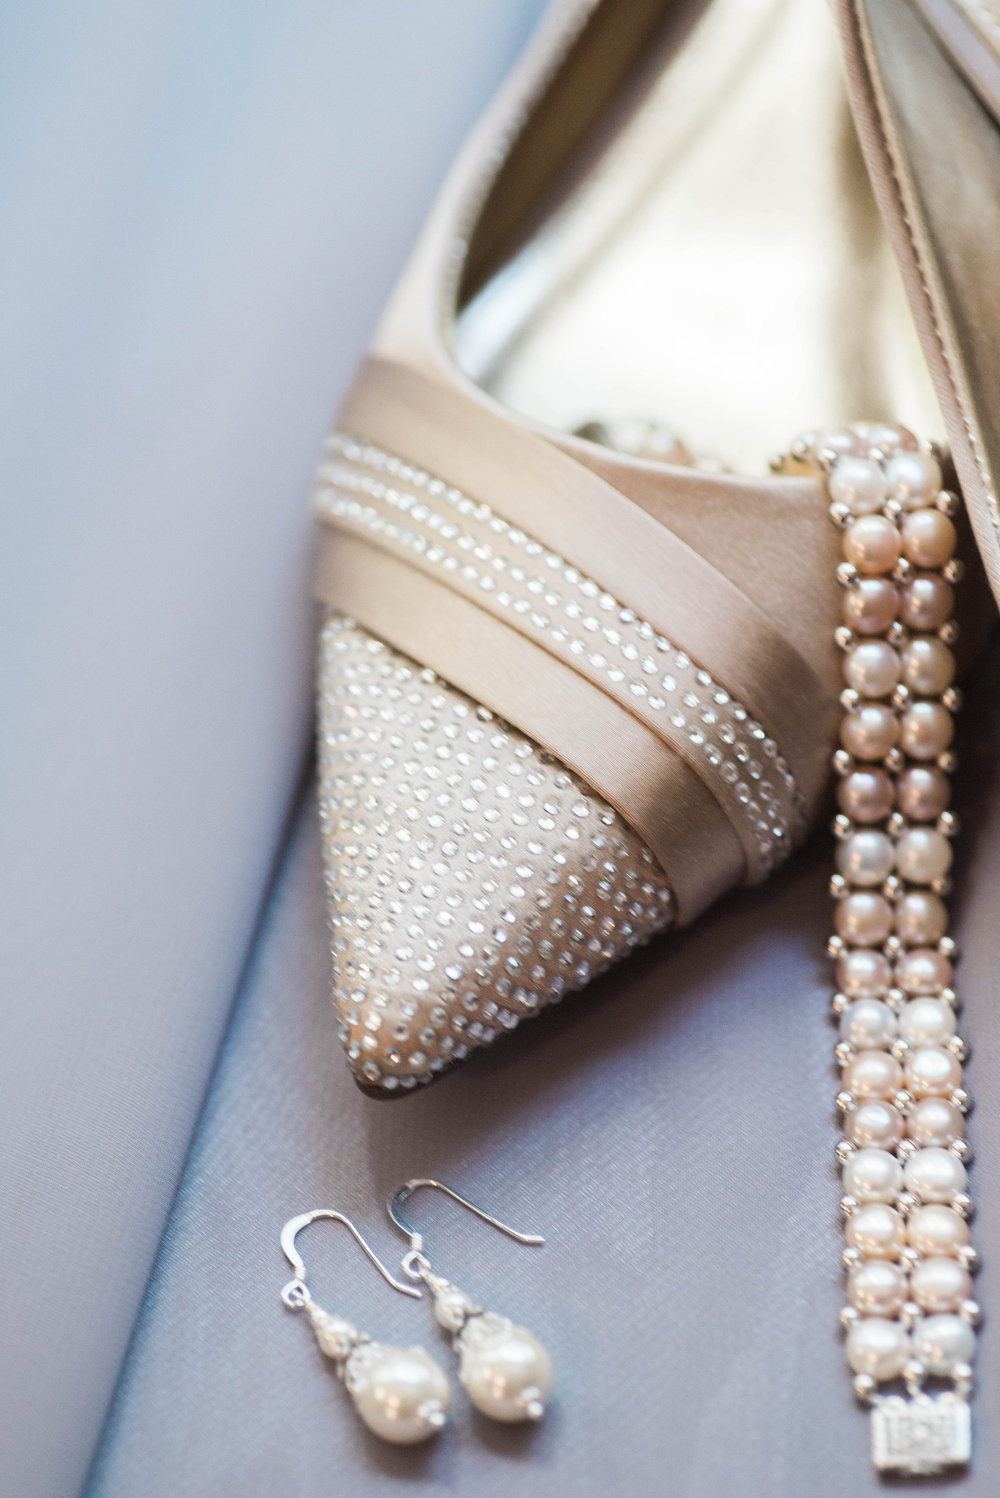 Wedding Details | Maryland, Washington DC, Pennsylvania, Virginia Wedding Photographer | Anne Casey Photography